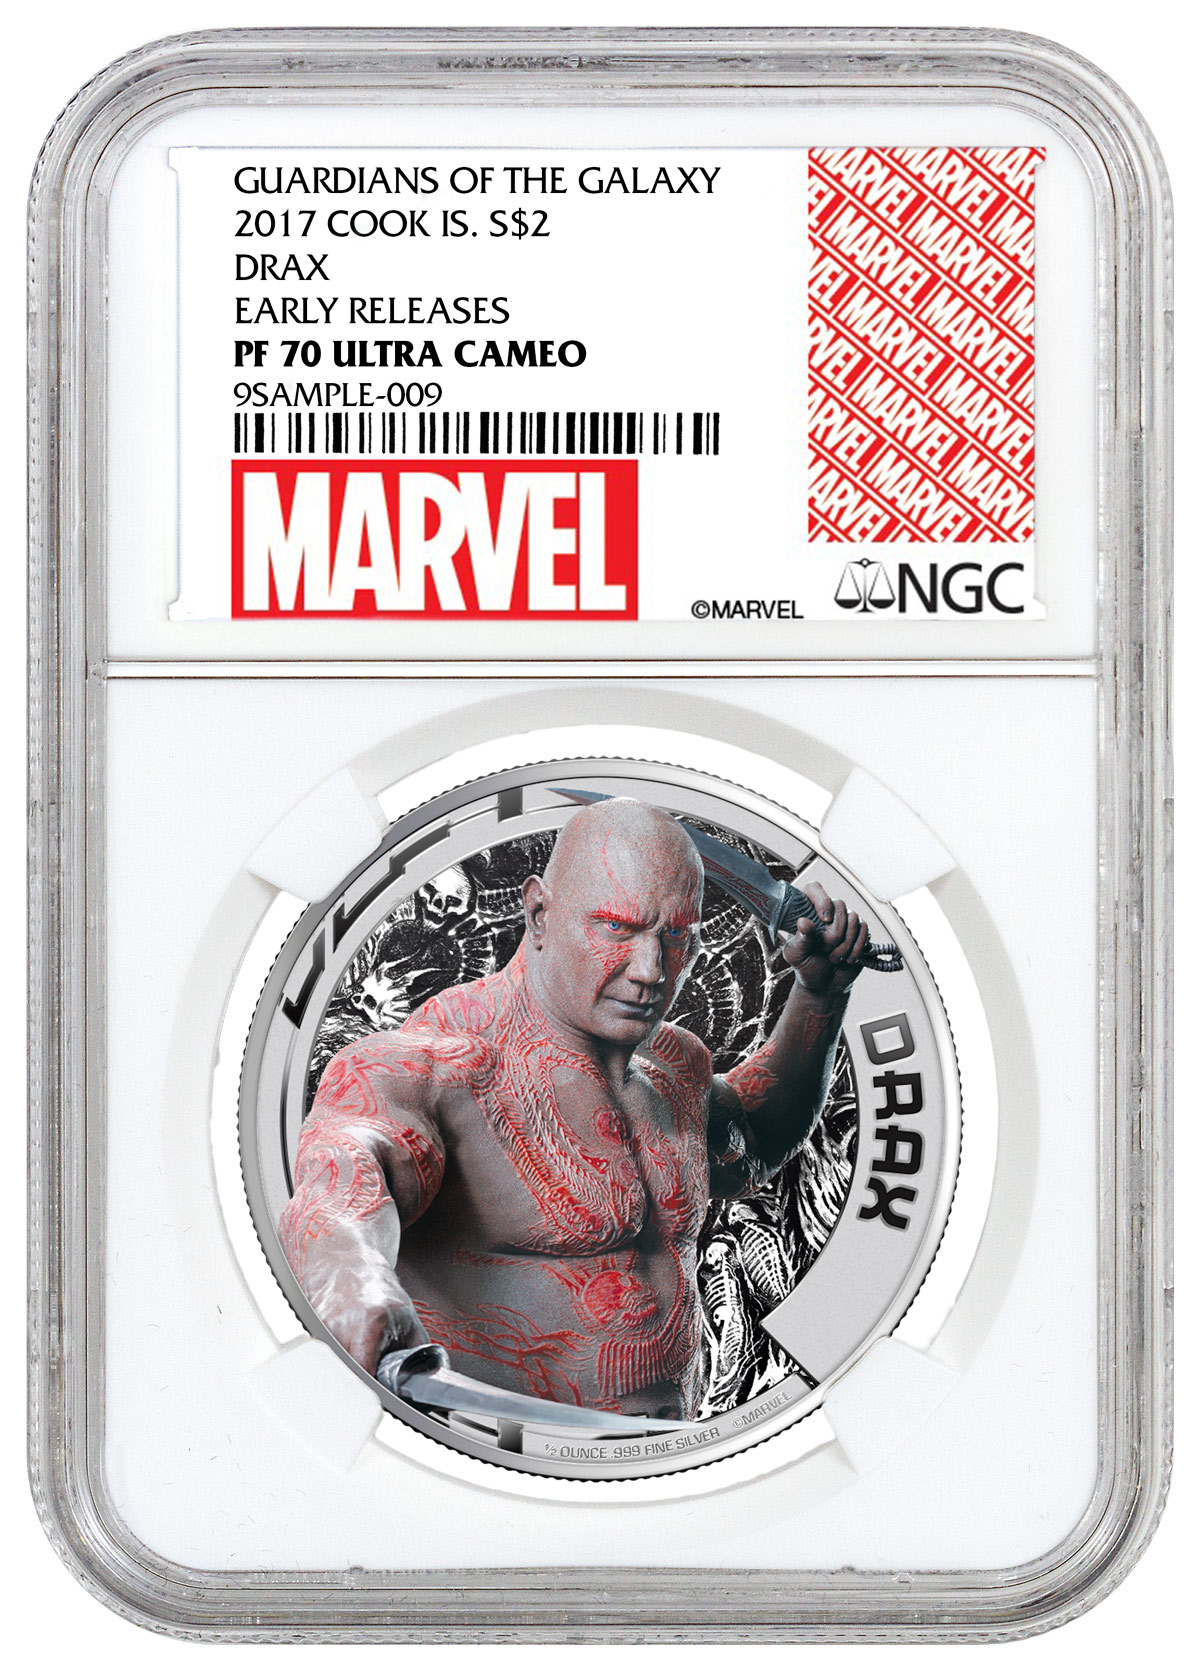 2017 Cook Islands Marvel Guardians of the Galaxy - Drax 1/2 oz Silver Colorized Proof $2 Coin NGC PF70 UC ER (Exclusive Marvel Label)